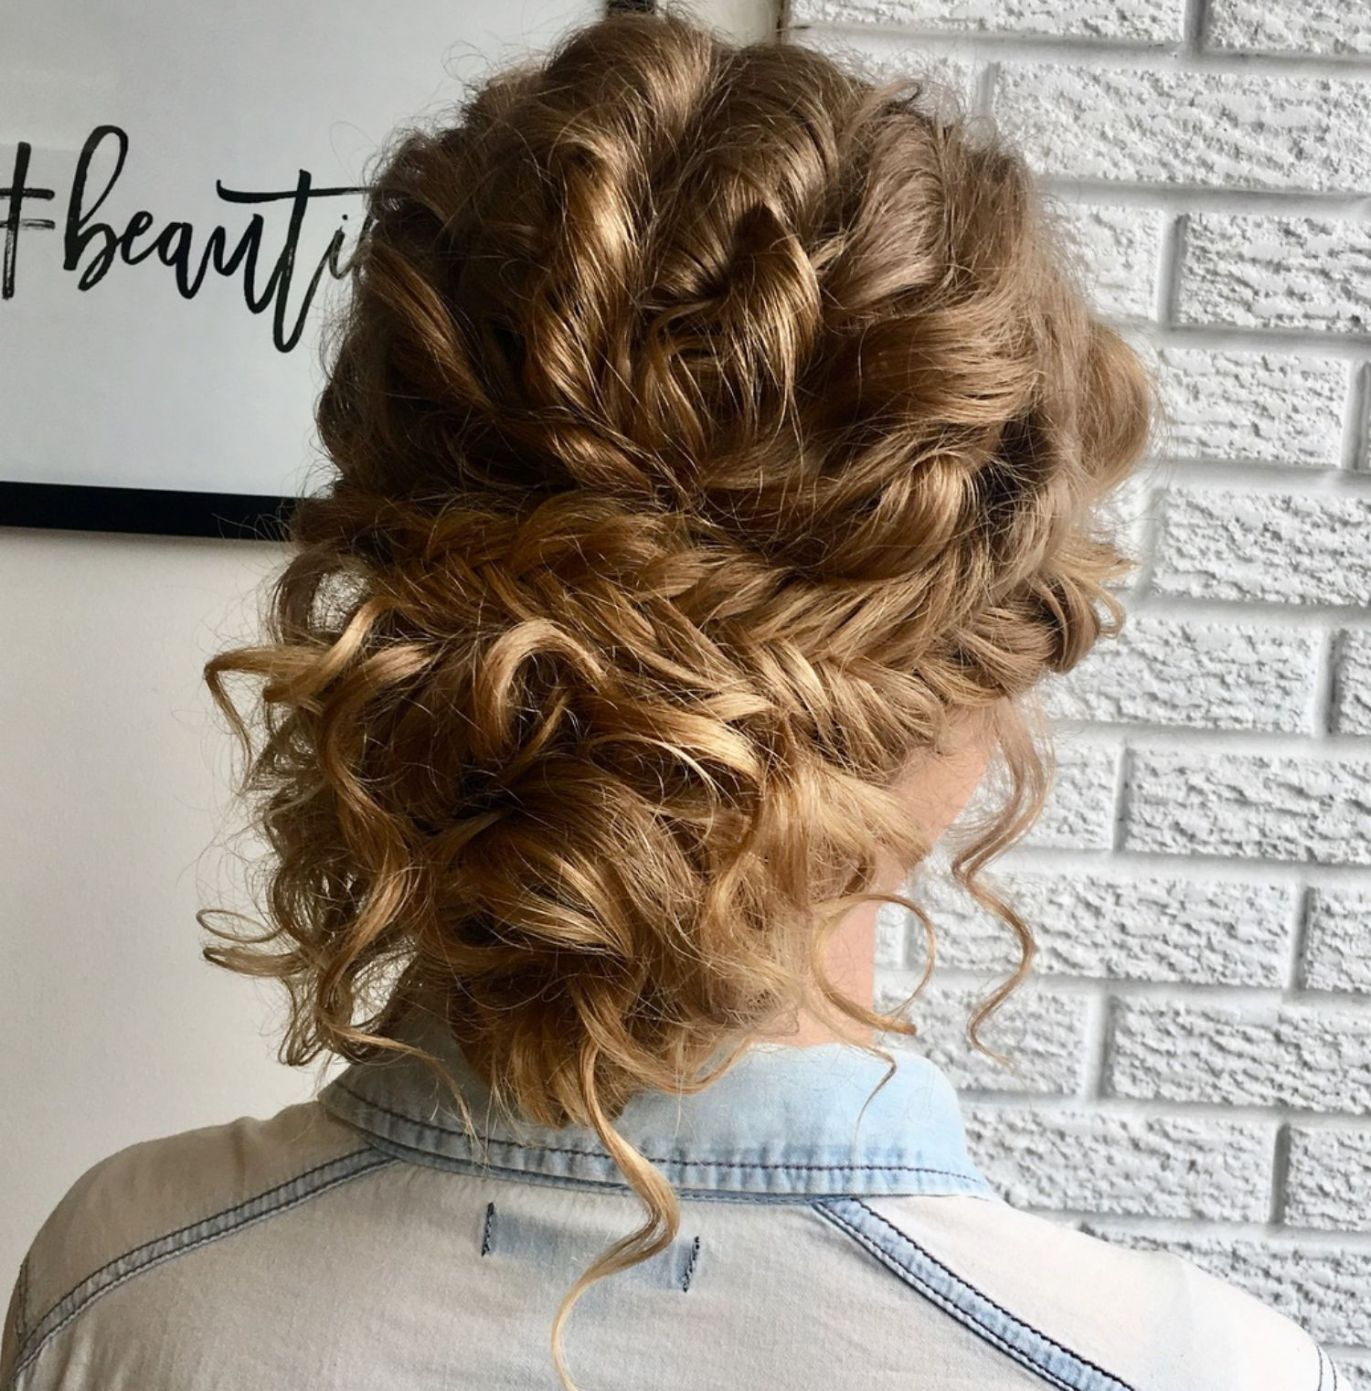 Low Messy Curly Bun With A Braid Curly Hair Styles Naturally Curly Hair Styles Loose Curly Updo